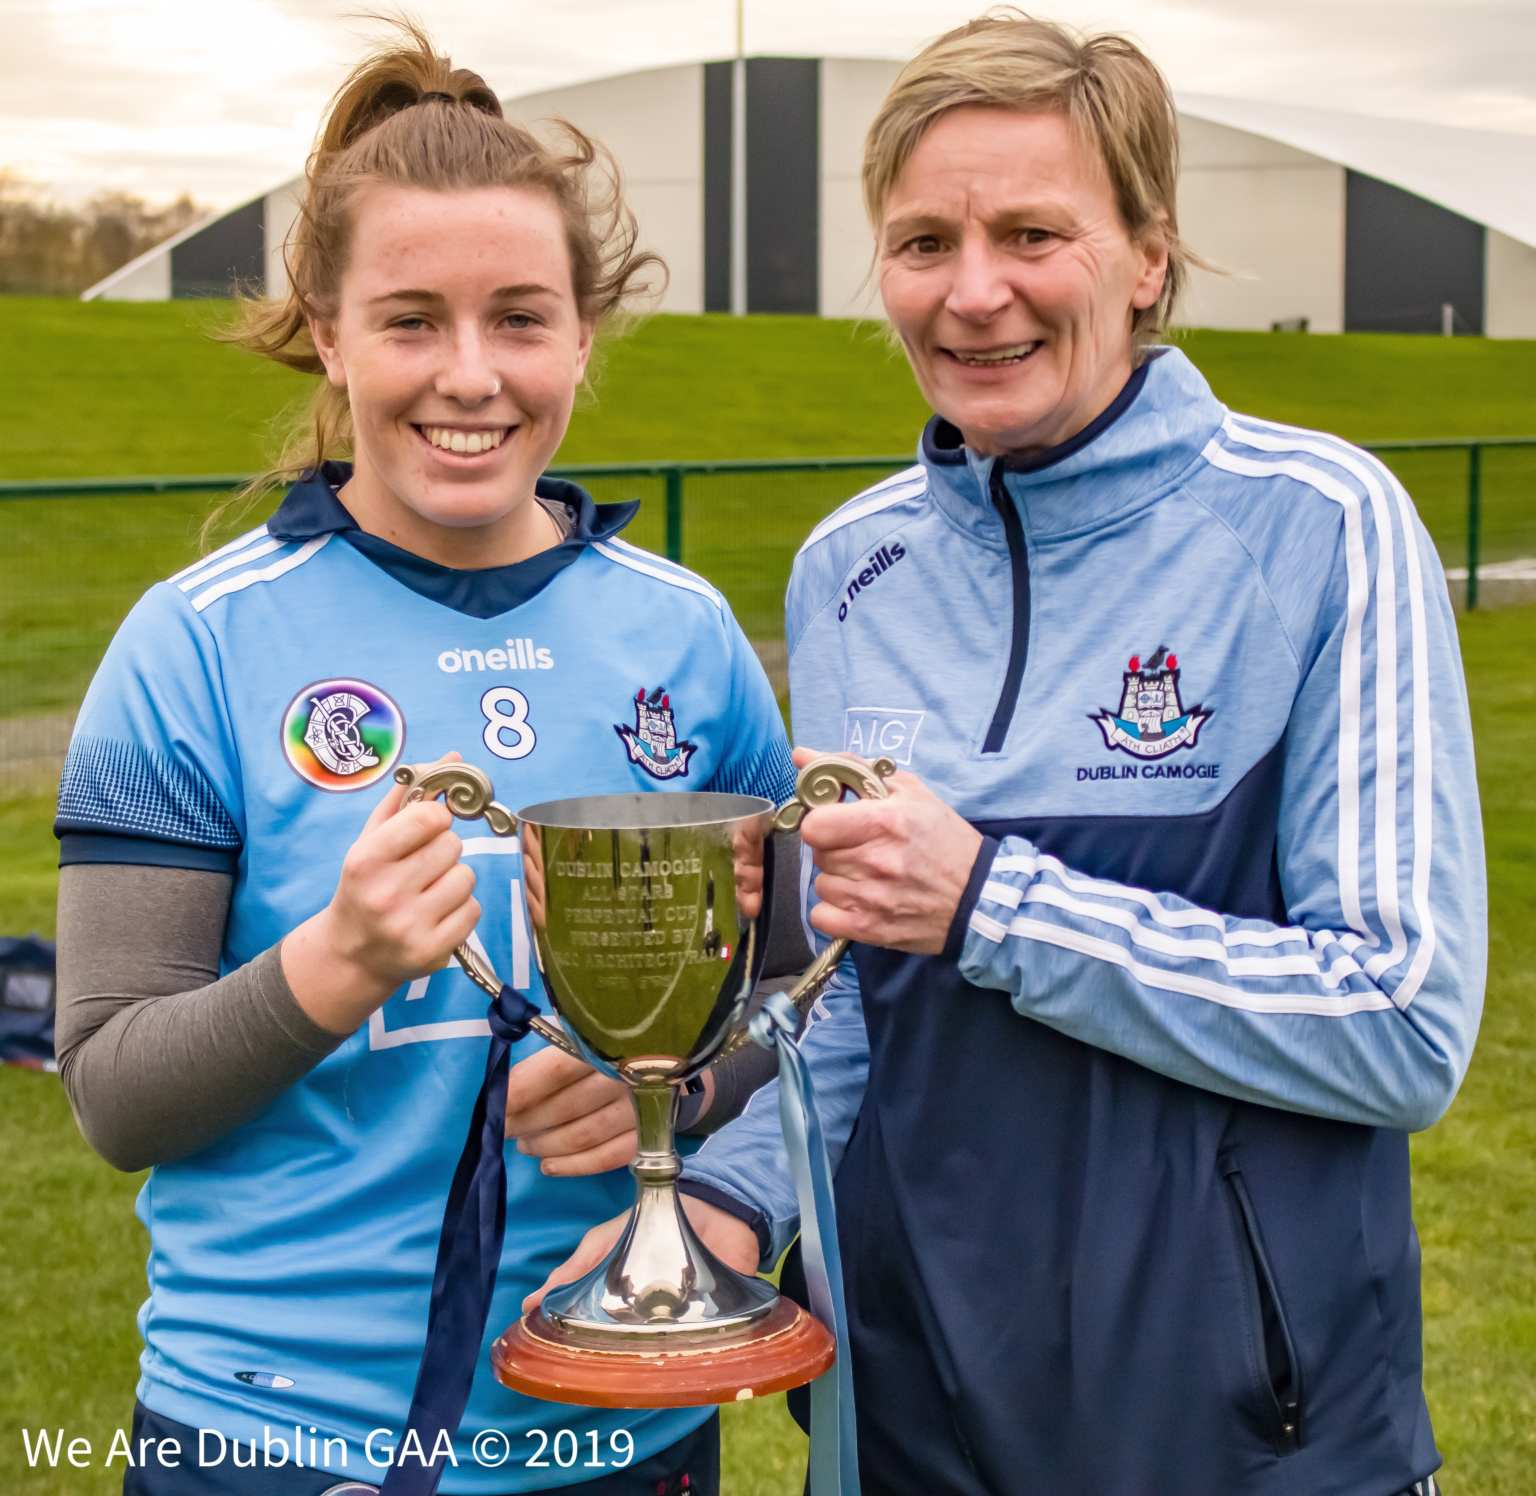 Dublin Captain Sinead Wylde is presented with the cup after her side won today's annual Camogie Dub Stars Game.